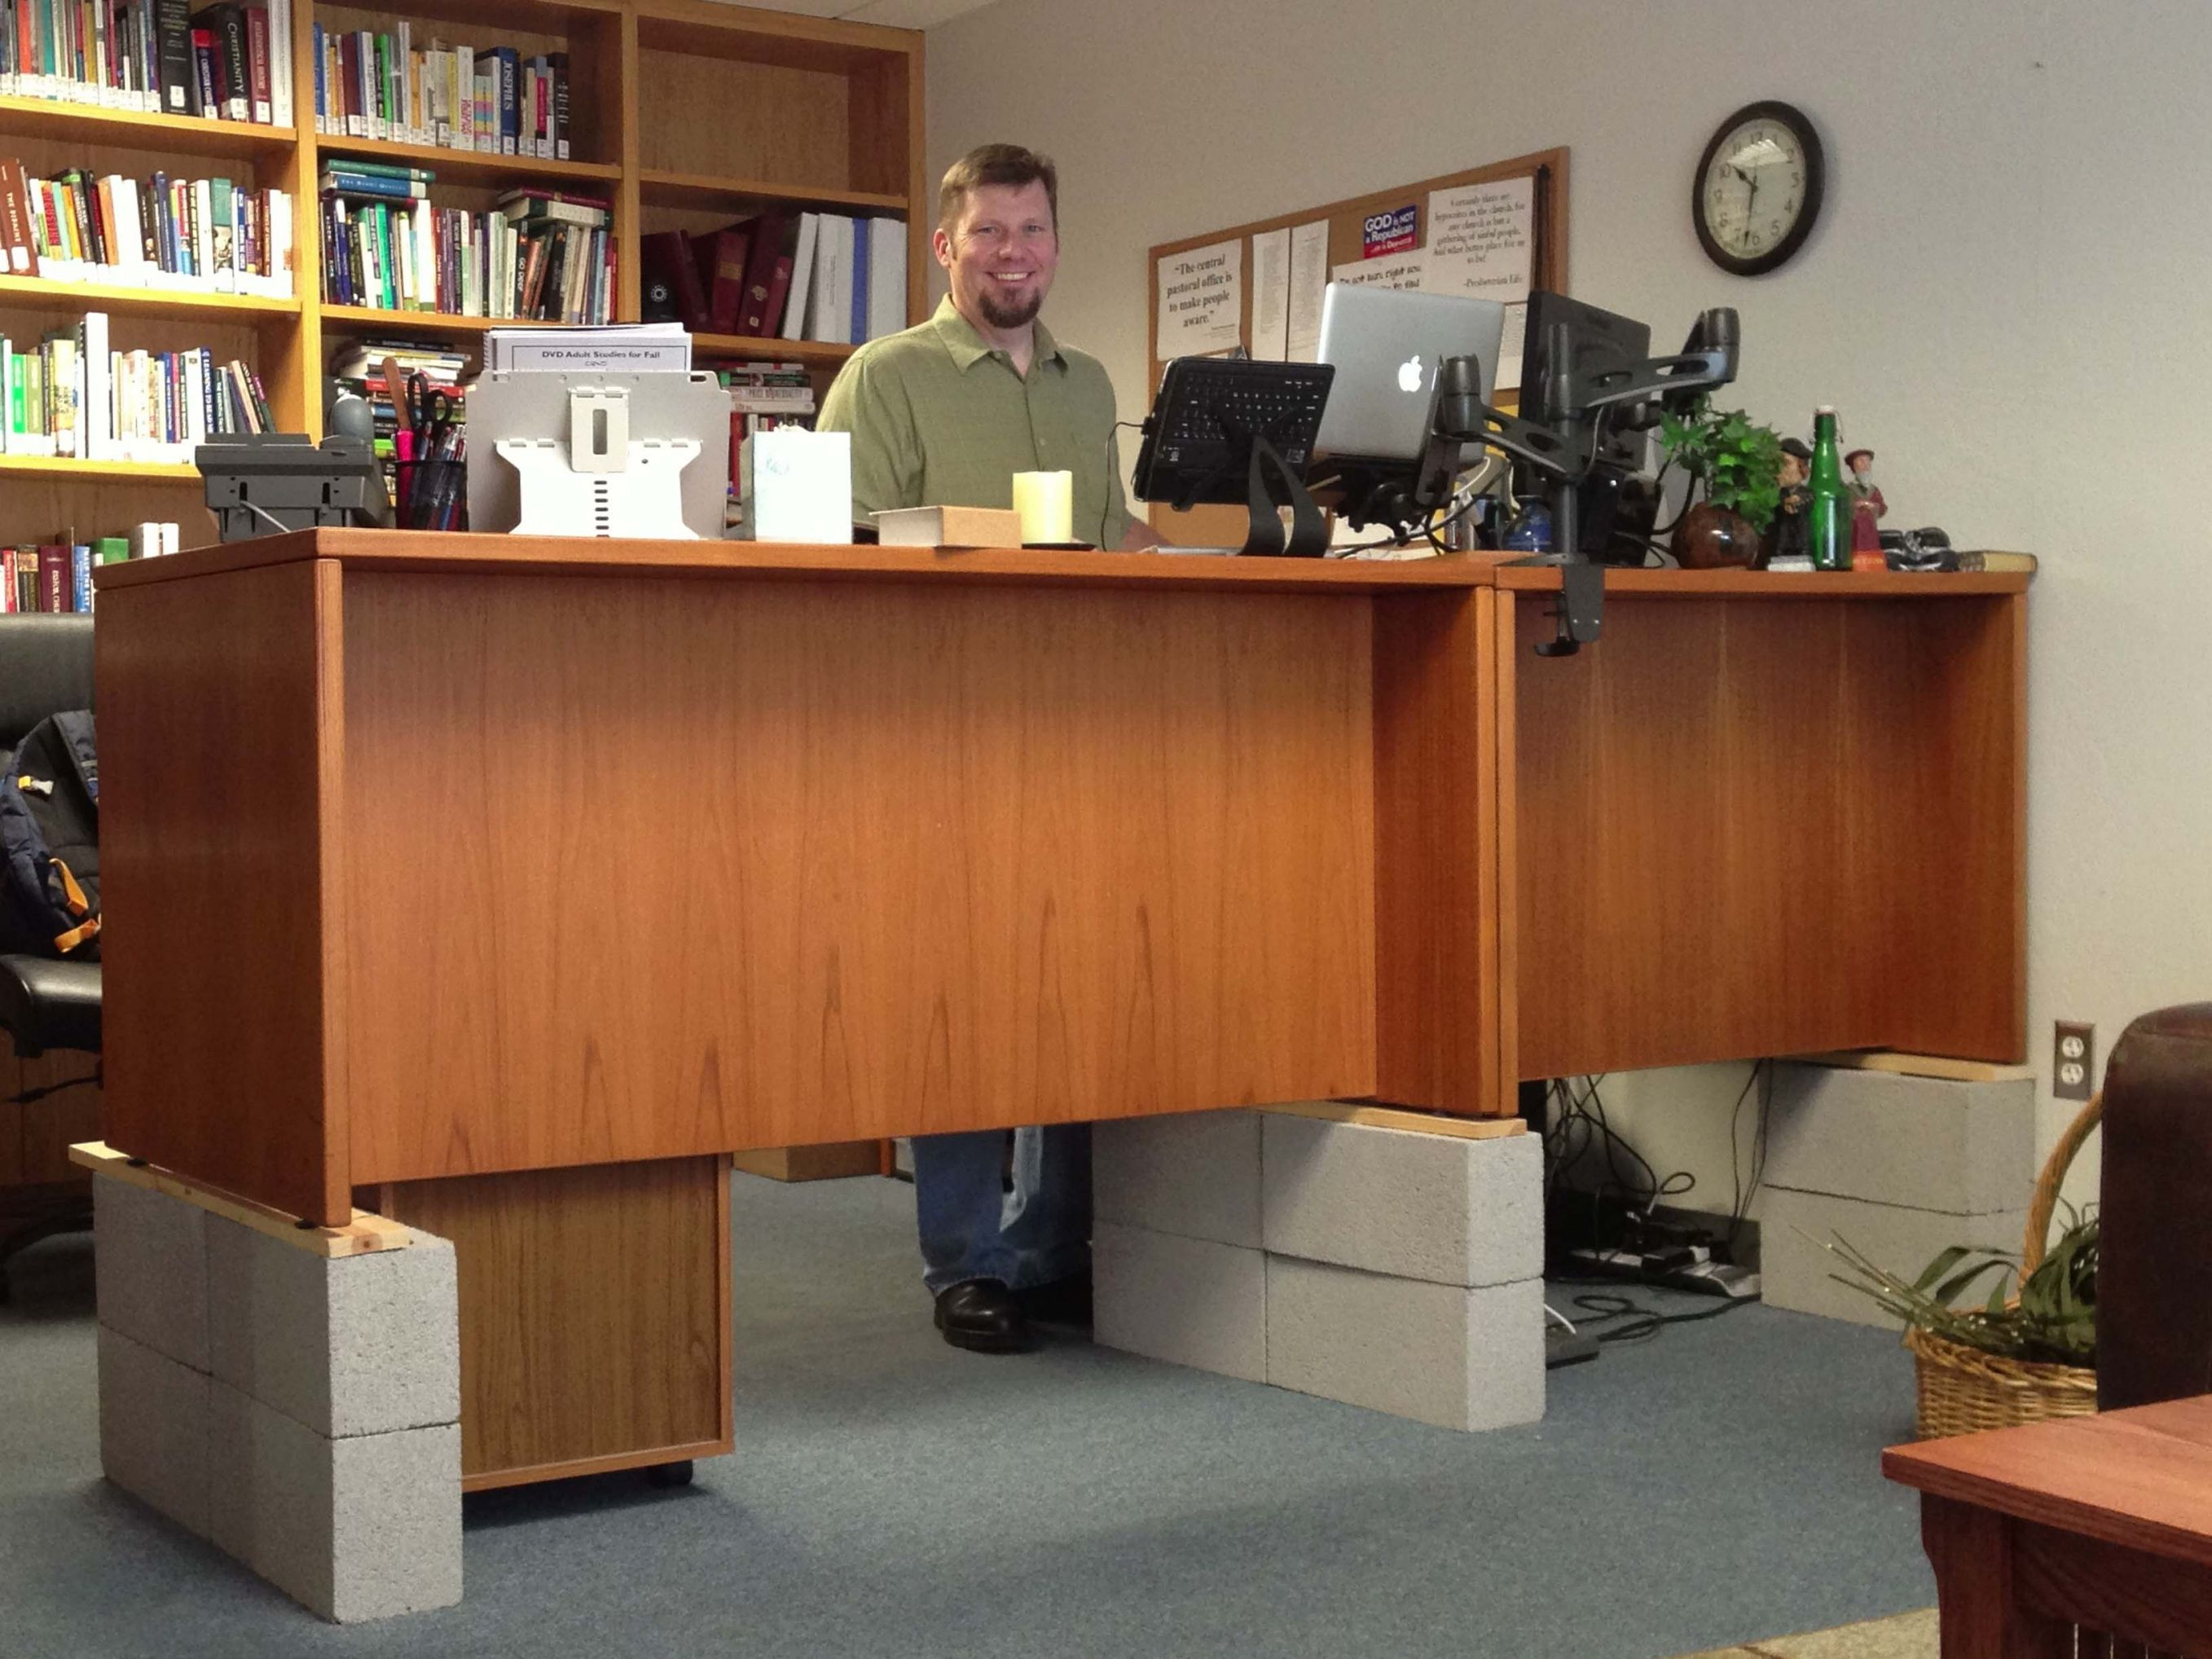 Pin By Neby On Home And Garden Pinterest Desk Diy Standing Desk